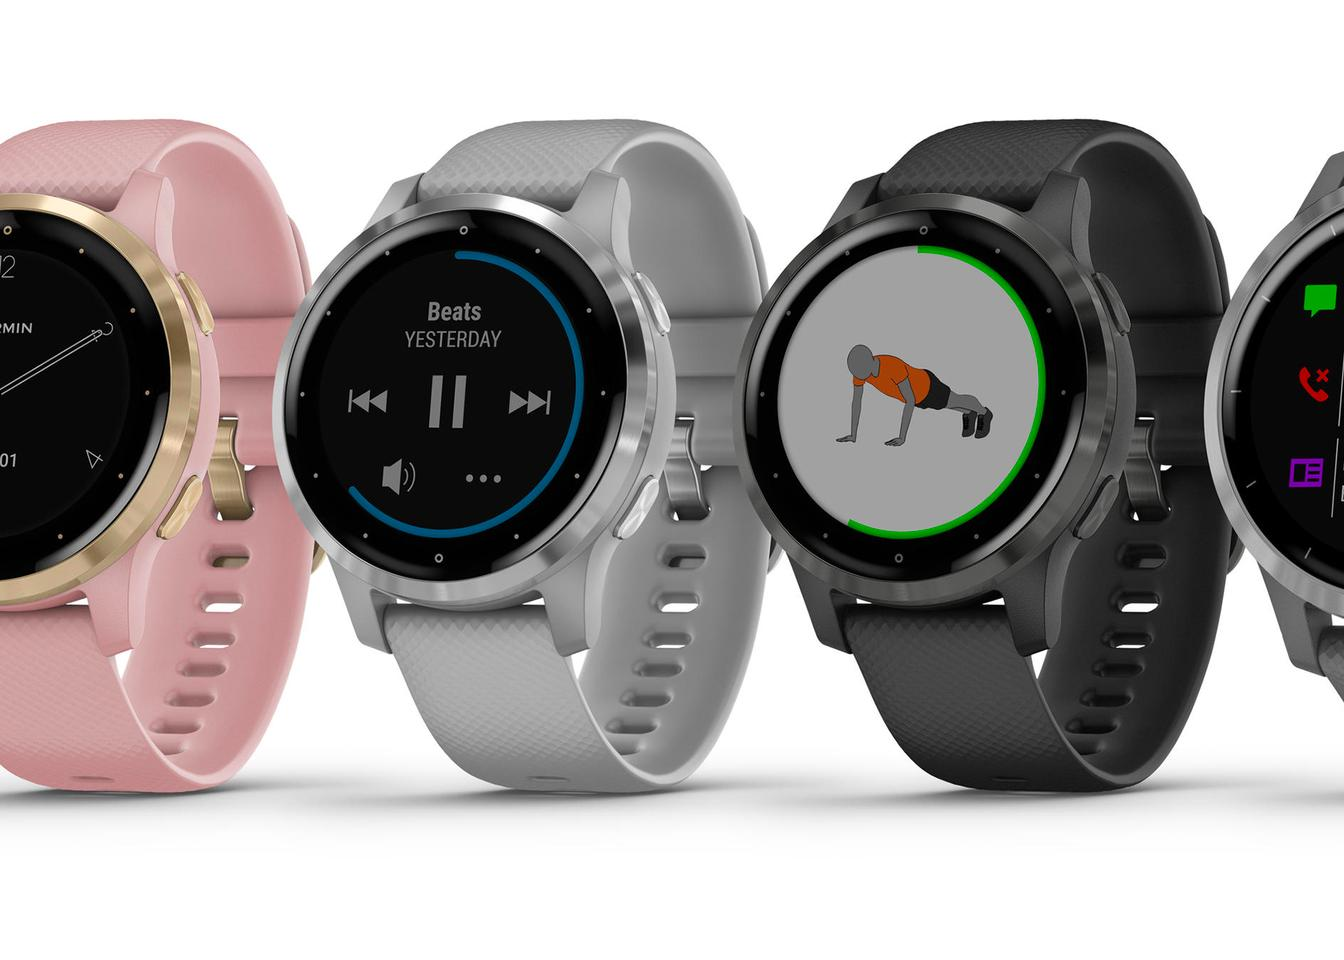 Garmin introduces a host of new smartwatches at IFA 2019